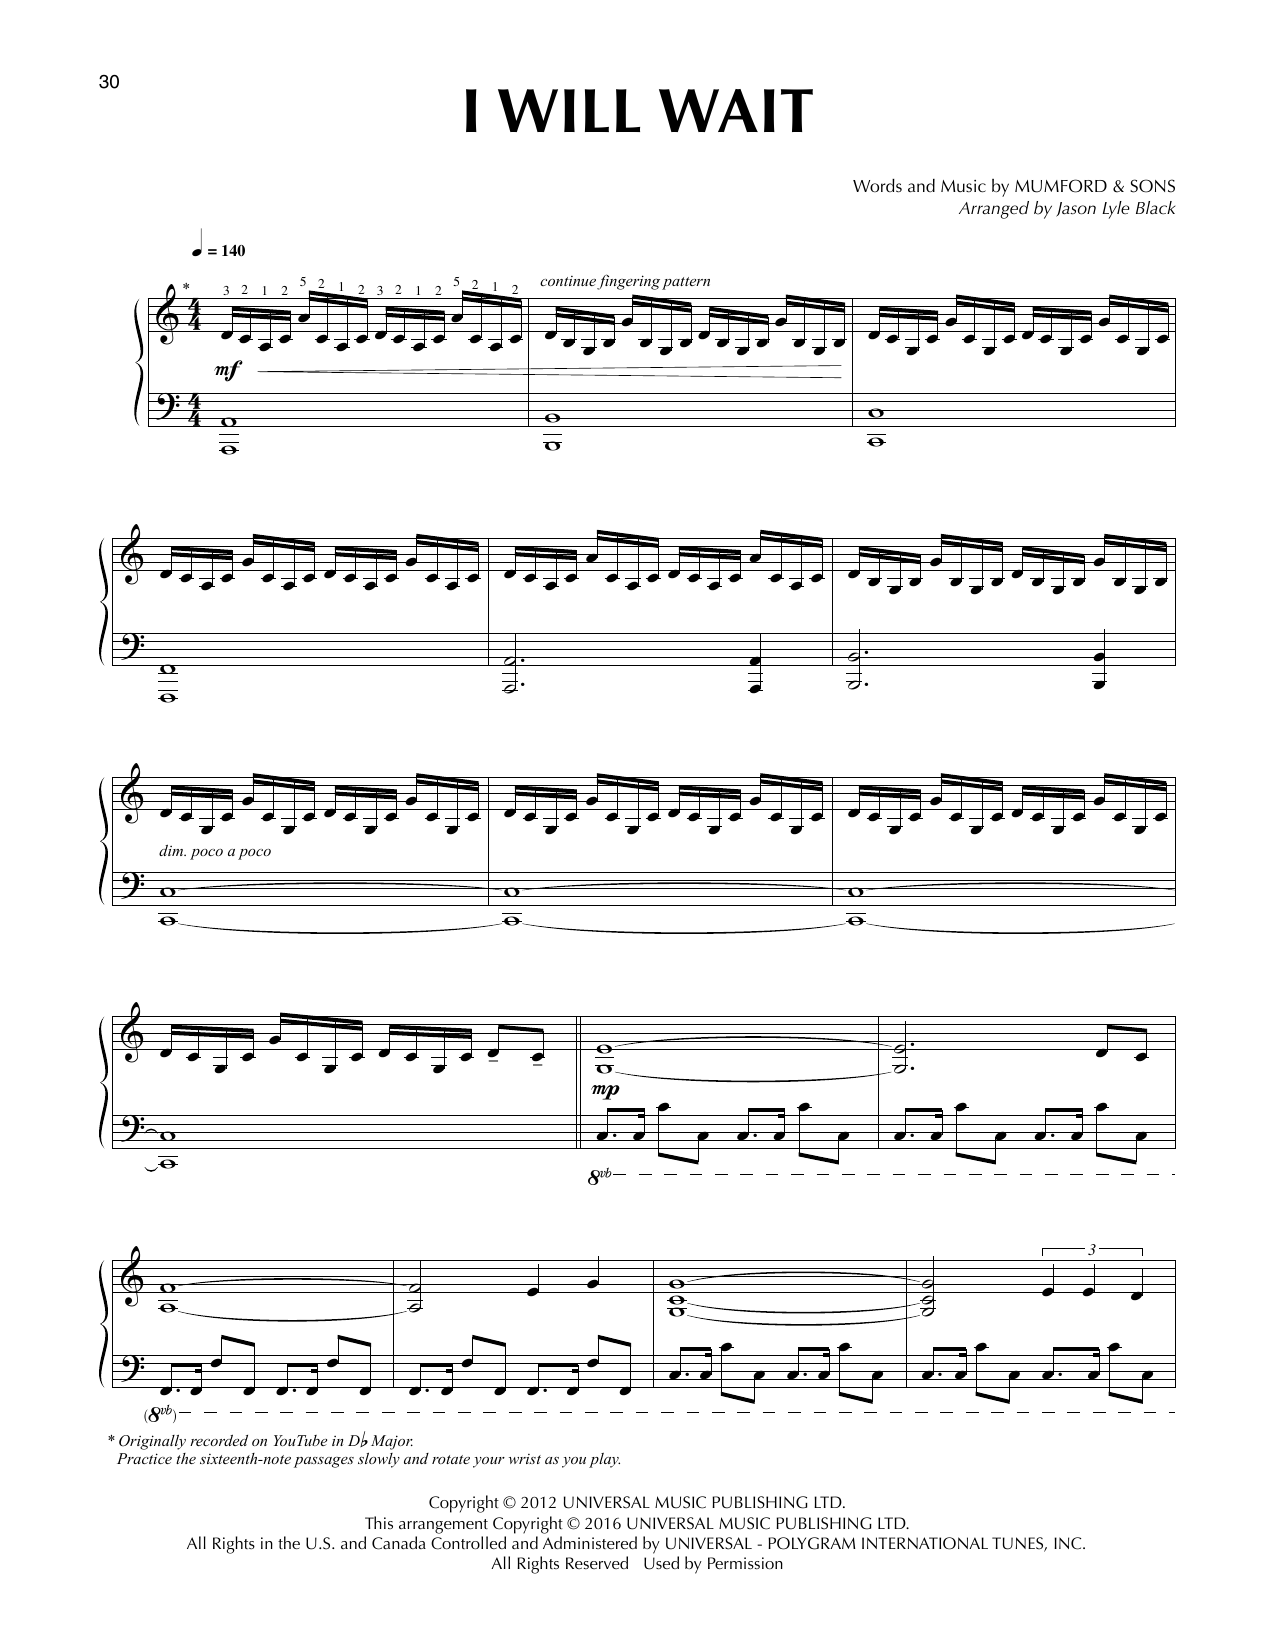 Download Jason Lyle Black 'I Will Wait' Digital Sheet Music Notes & Chords and start playing in minutes